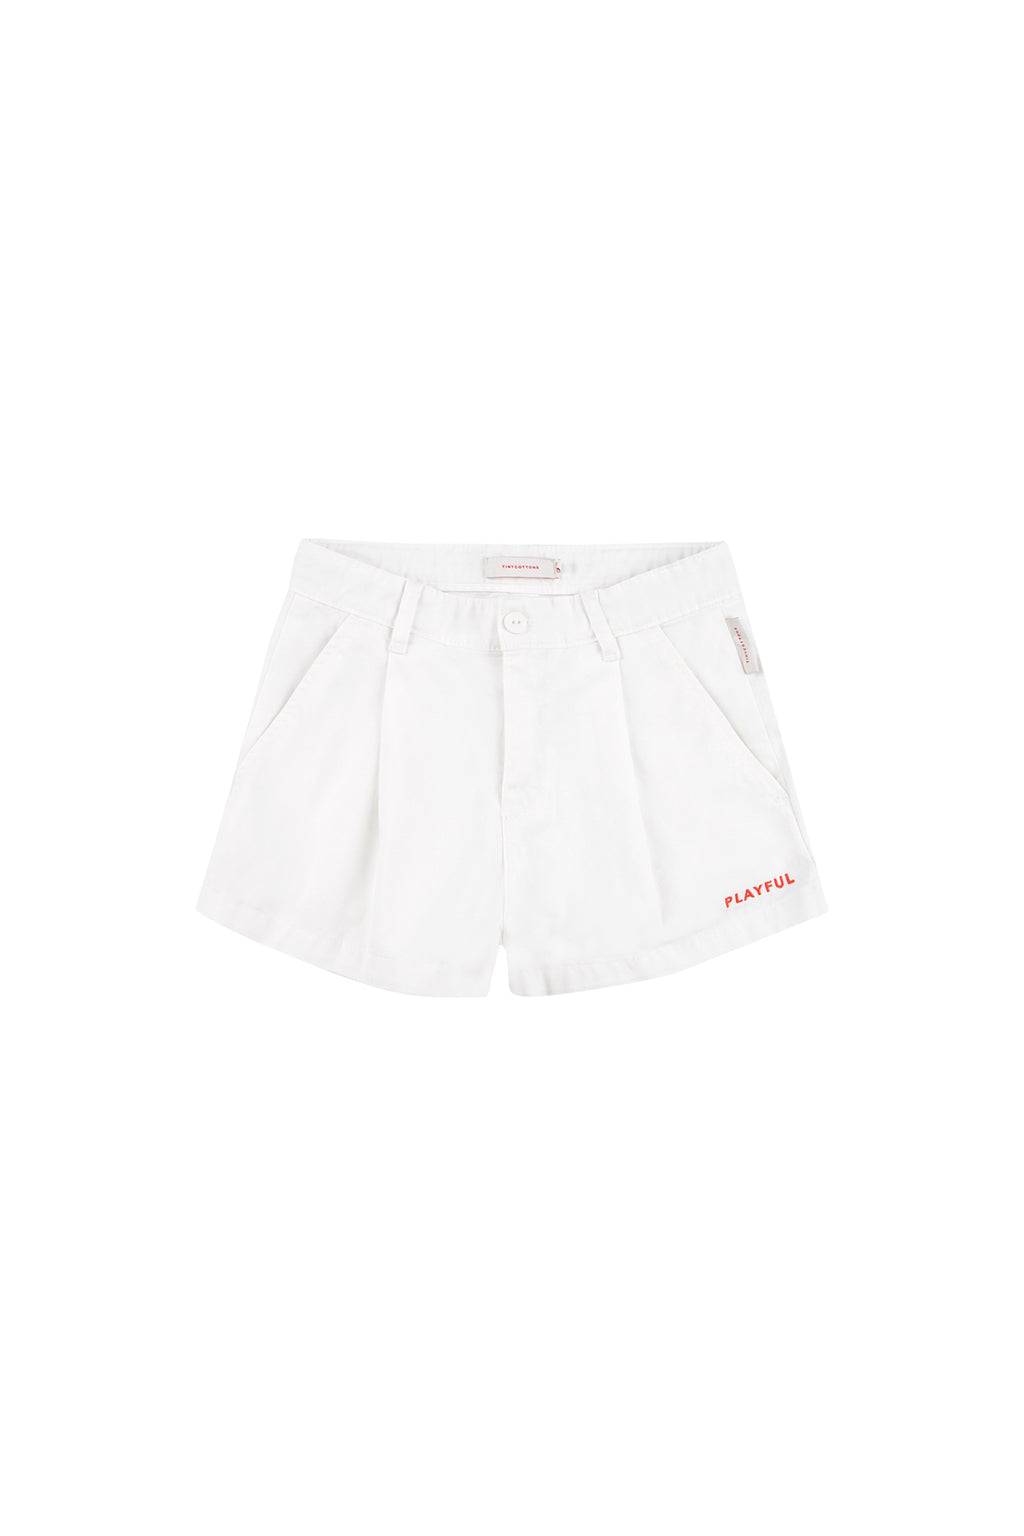 Tiny Cottons Solid Pleat Short - Off White